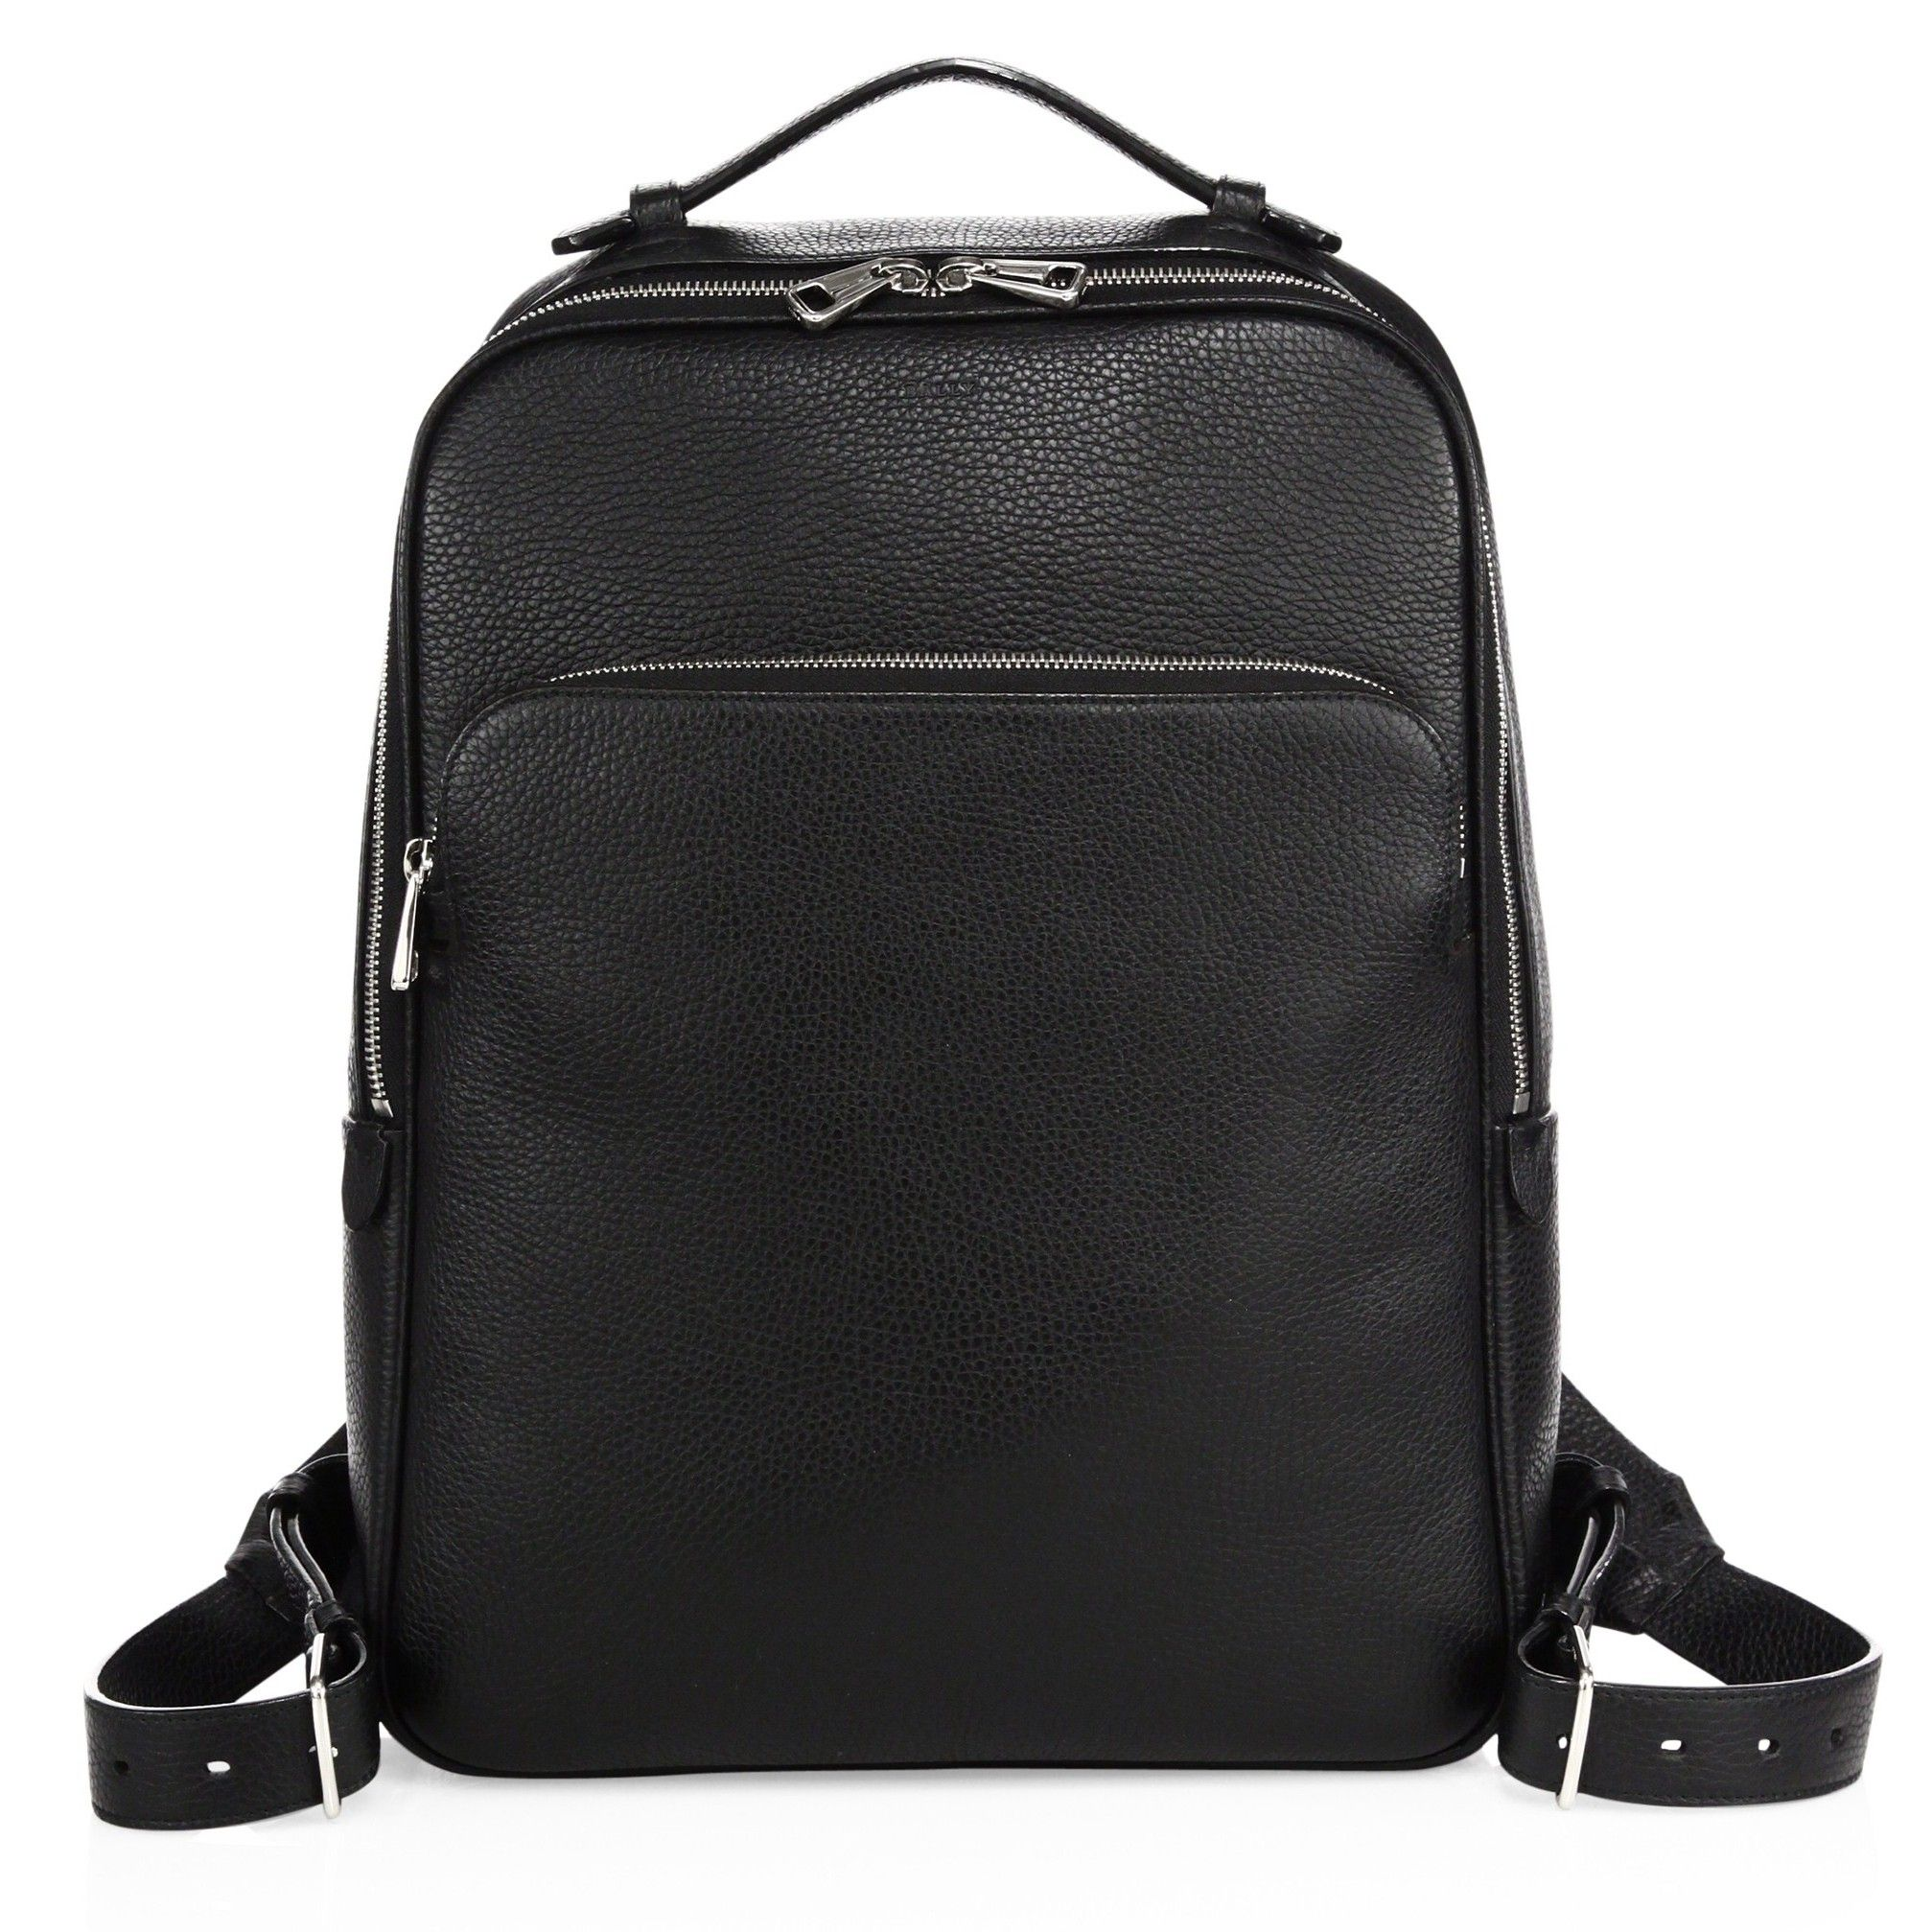 Bally Leather Backpack Bally Bags Leather Backpacks Leather Backpack Leather Bags